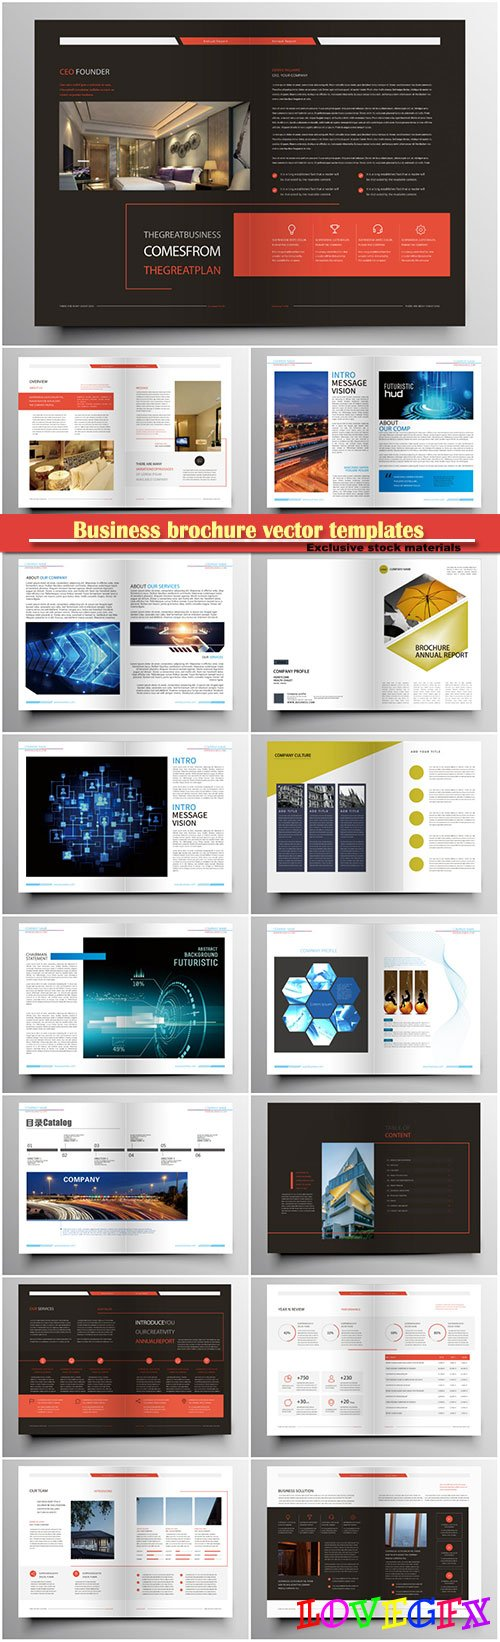 Business brochure vector templates, magazine cover, business mockup, education, presentation, report # 68